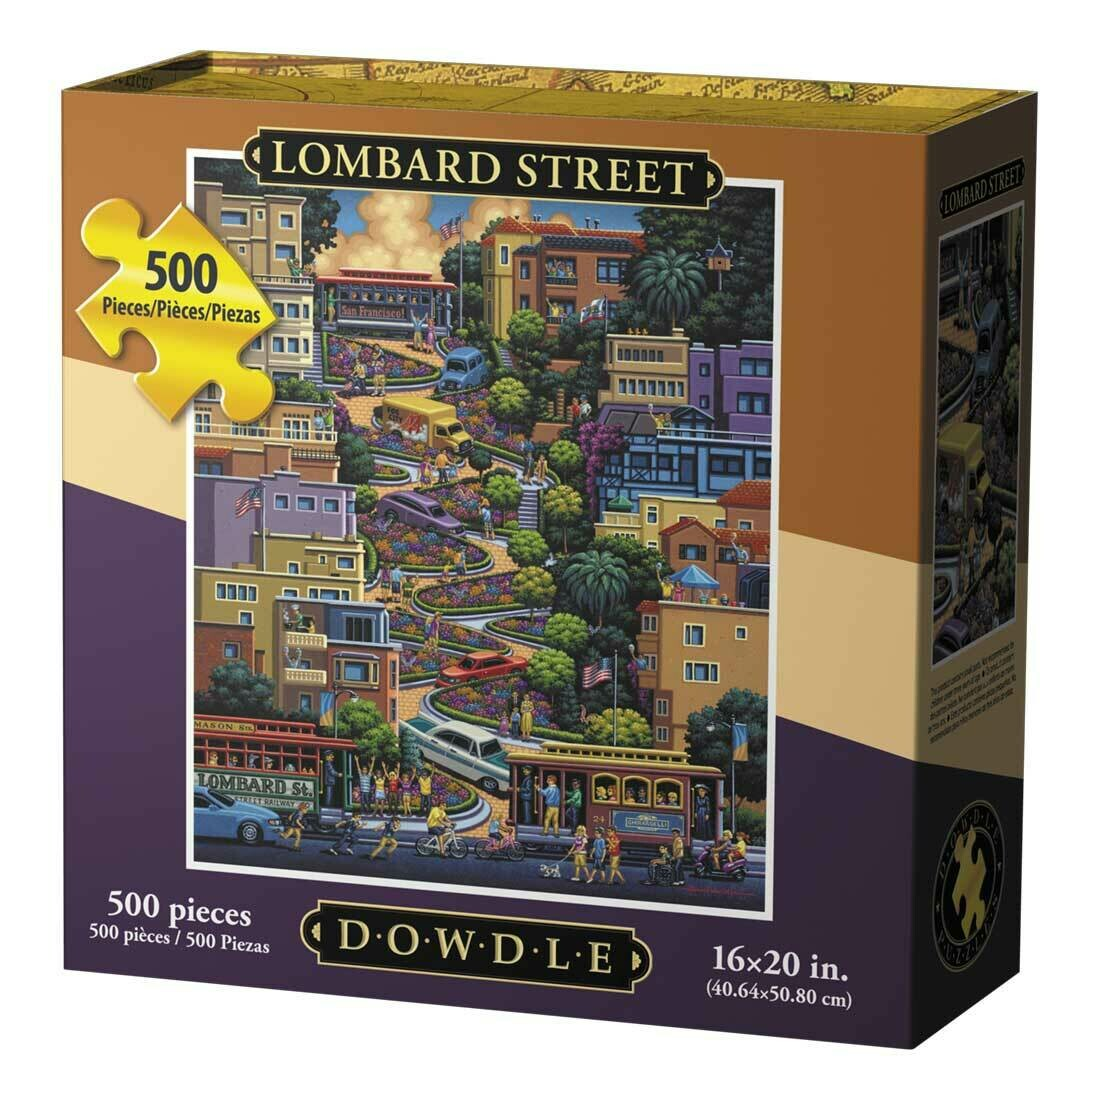 LOMBARD STREET - TRADITIONAL PUZZLE